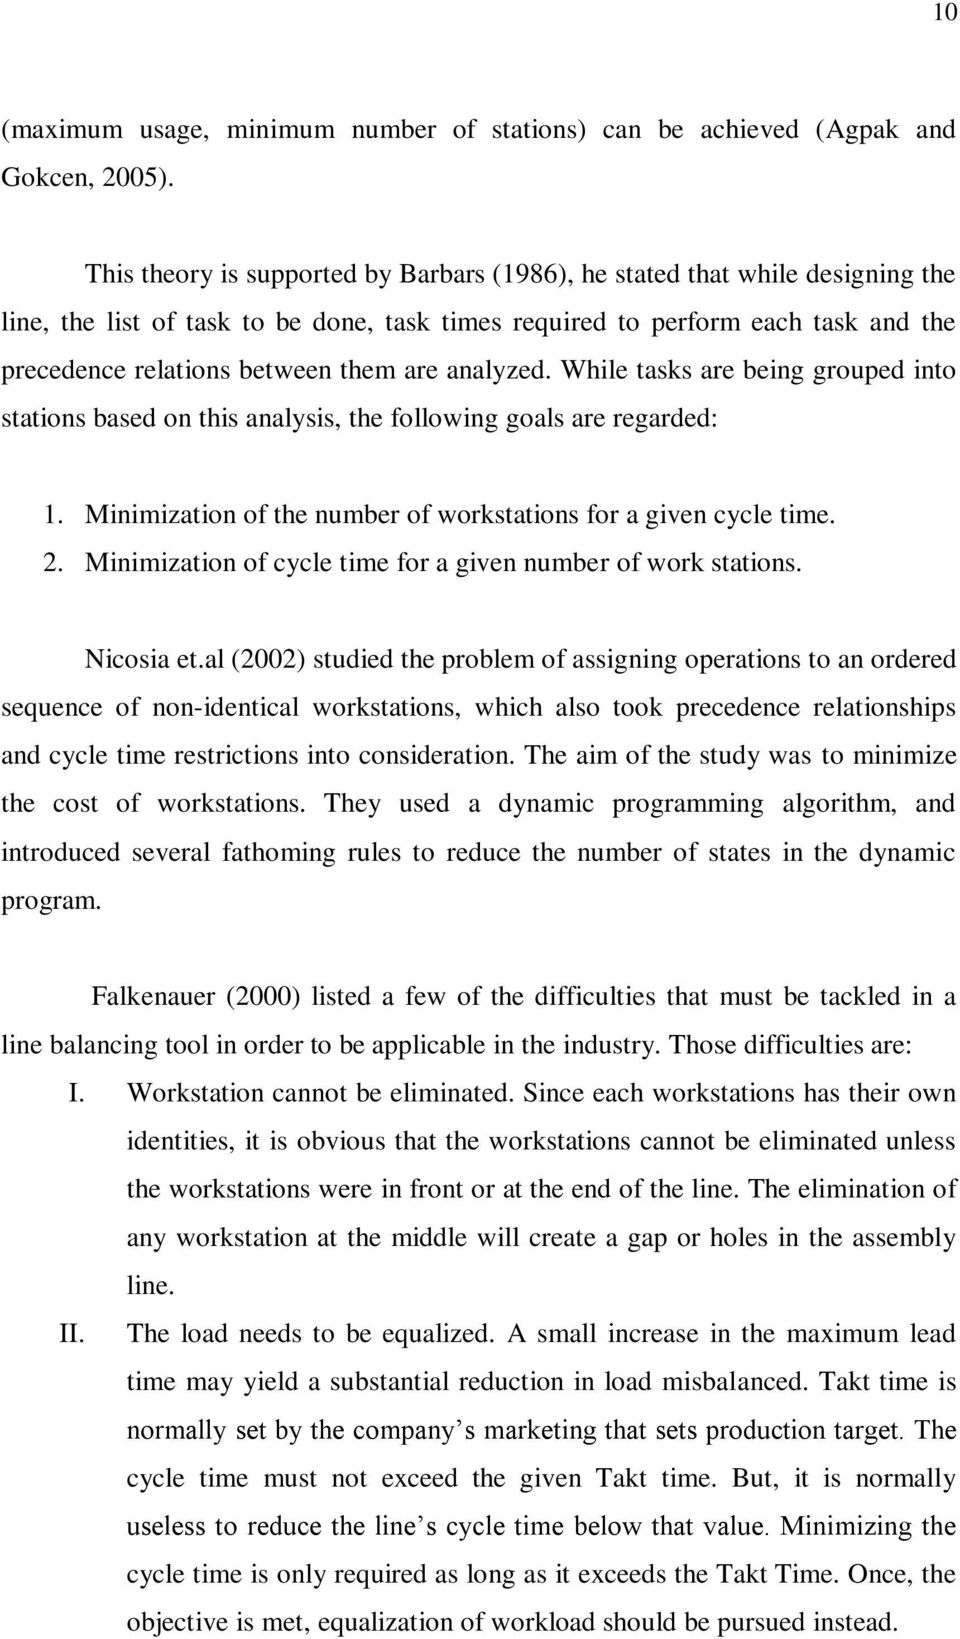 are analyzed. While tasks are being grouped into stations based on this analysis, the following goals are regarded: 1. Minimization of the number of workstations for a given cycle time. 2.